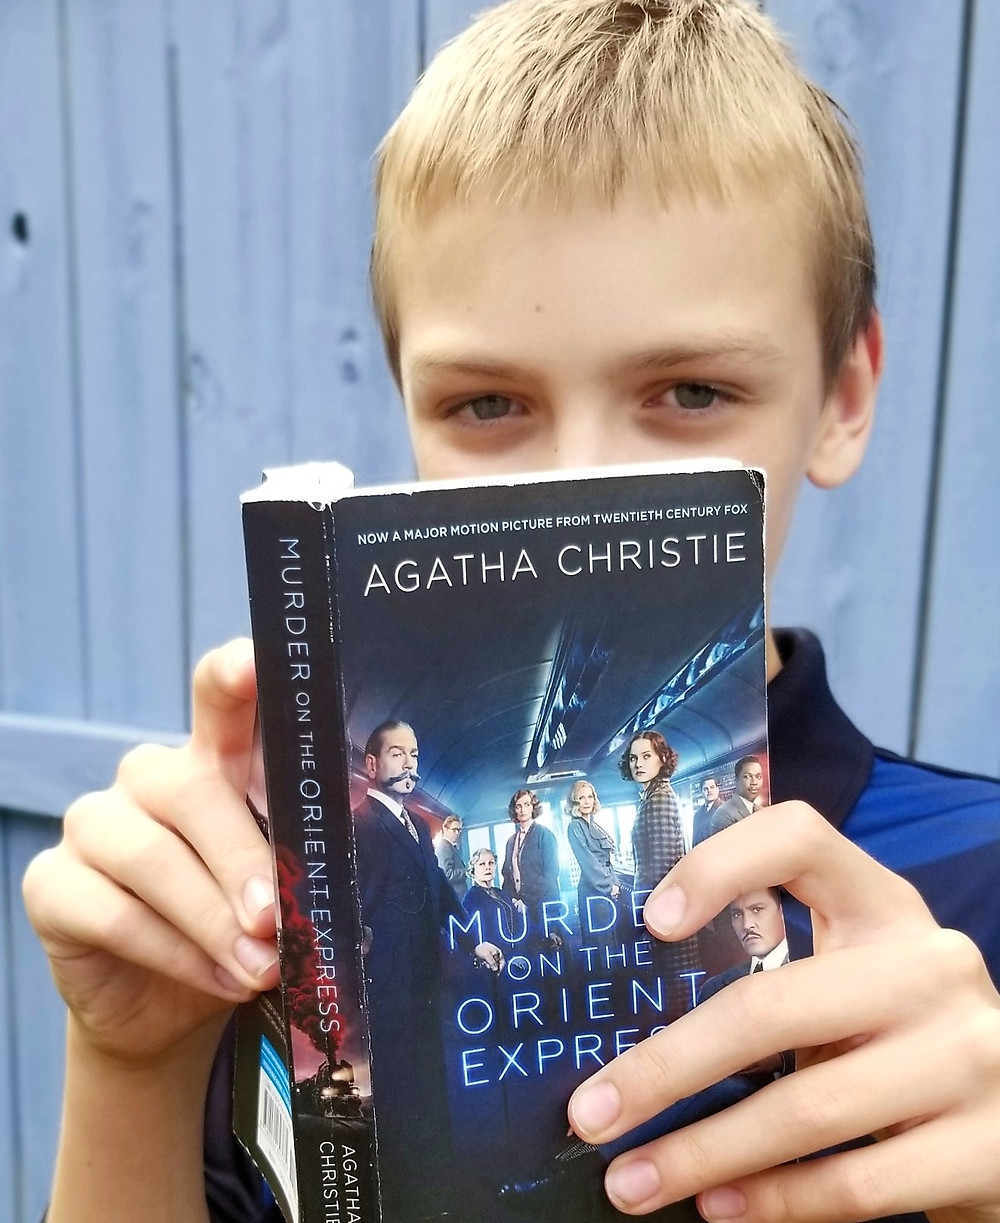 orient express movie vs book review, book to film summary, middle school book blog